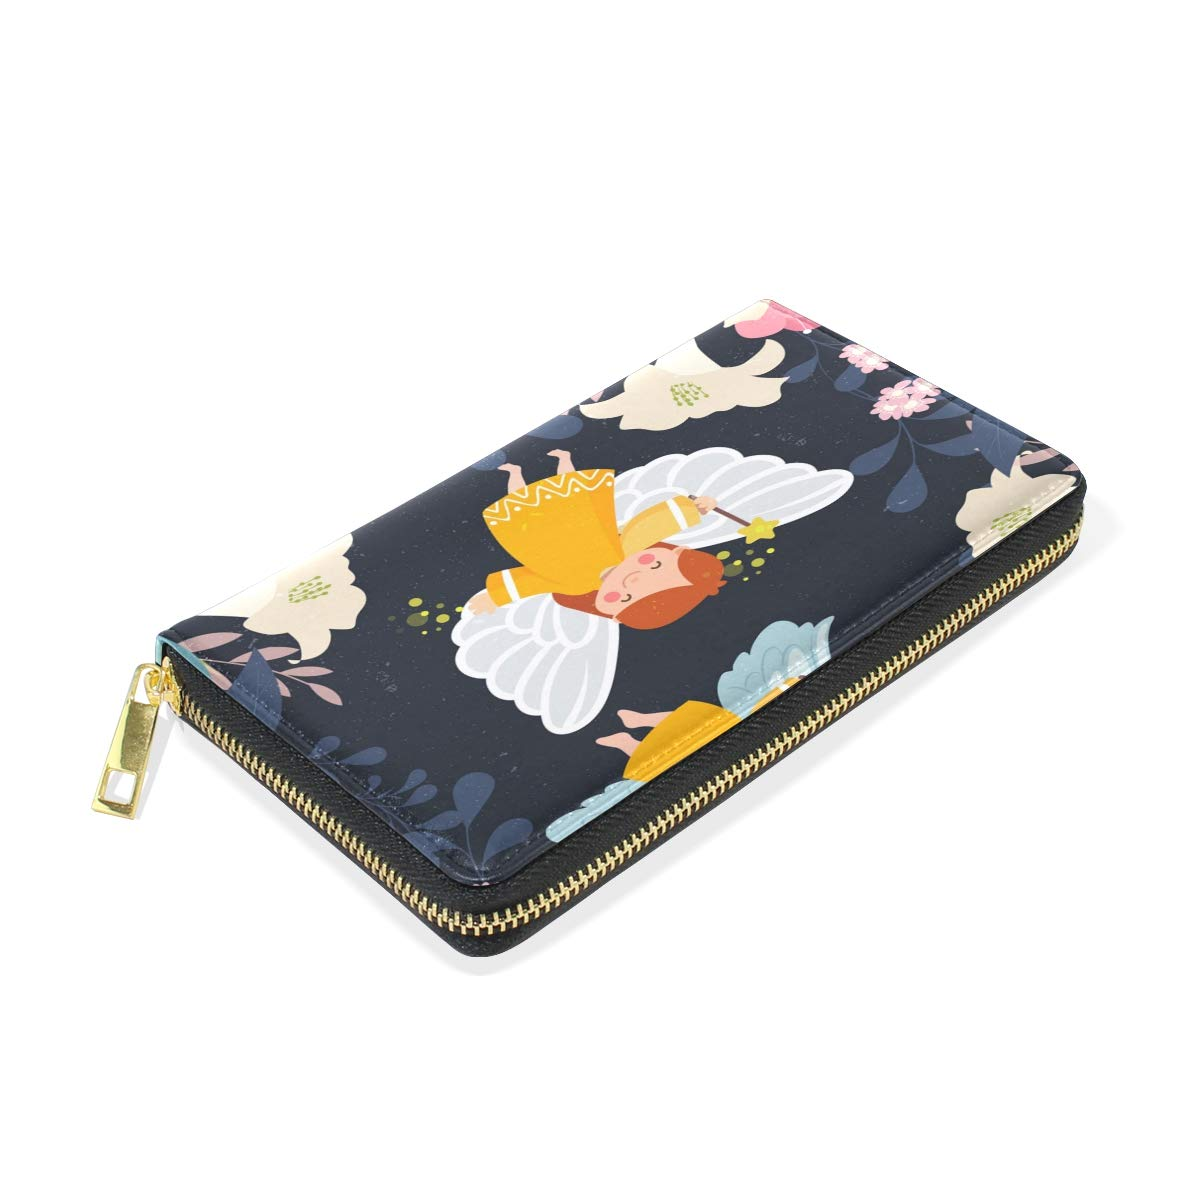 Amazon.com: Honey Bee Angel - Monedero de piel con ...